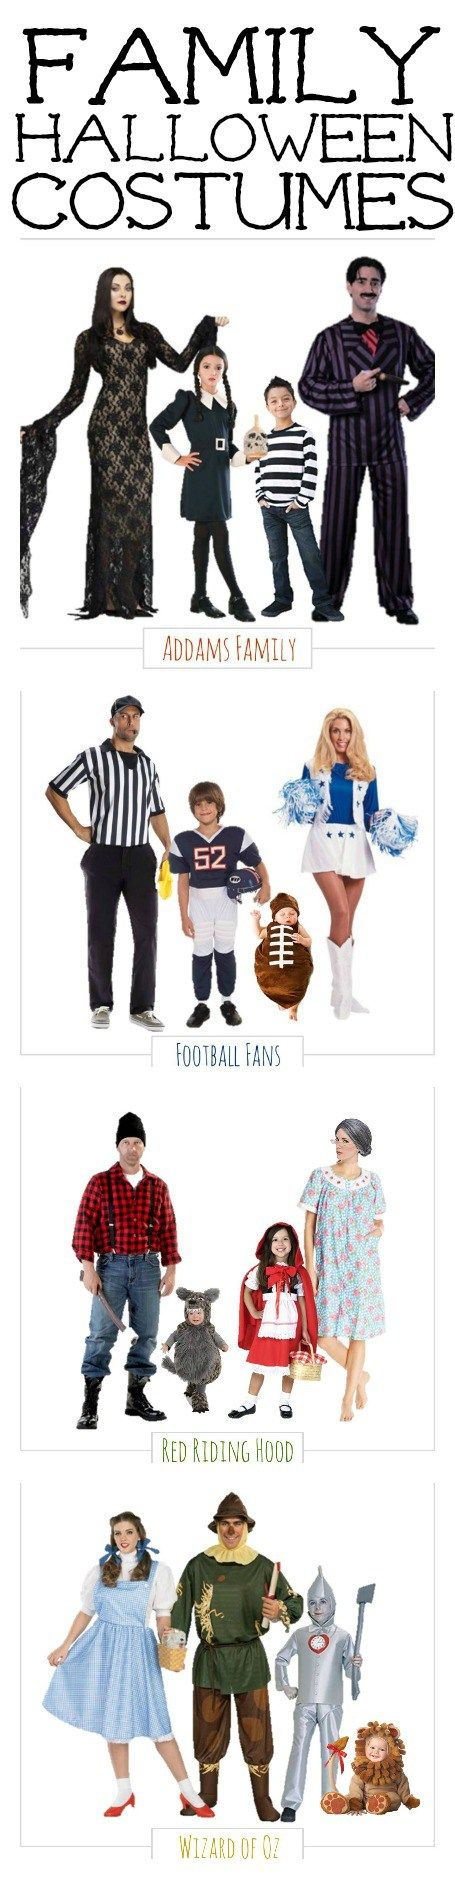 203 best DIY Halloween Costumes images on Pinterest | Halloween prop ...